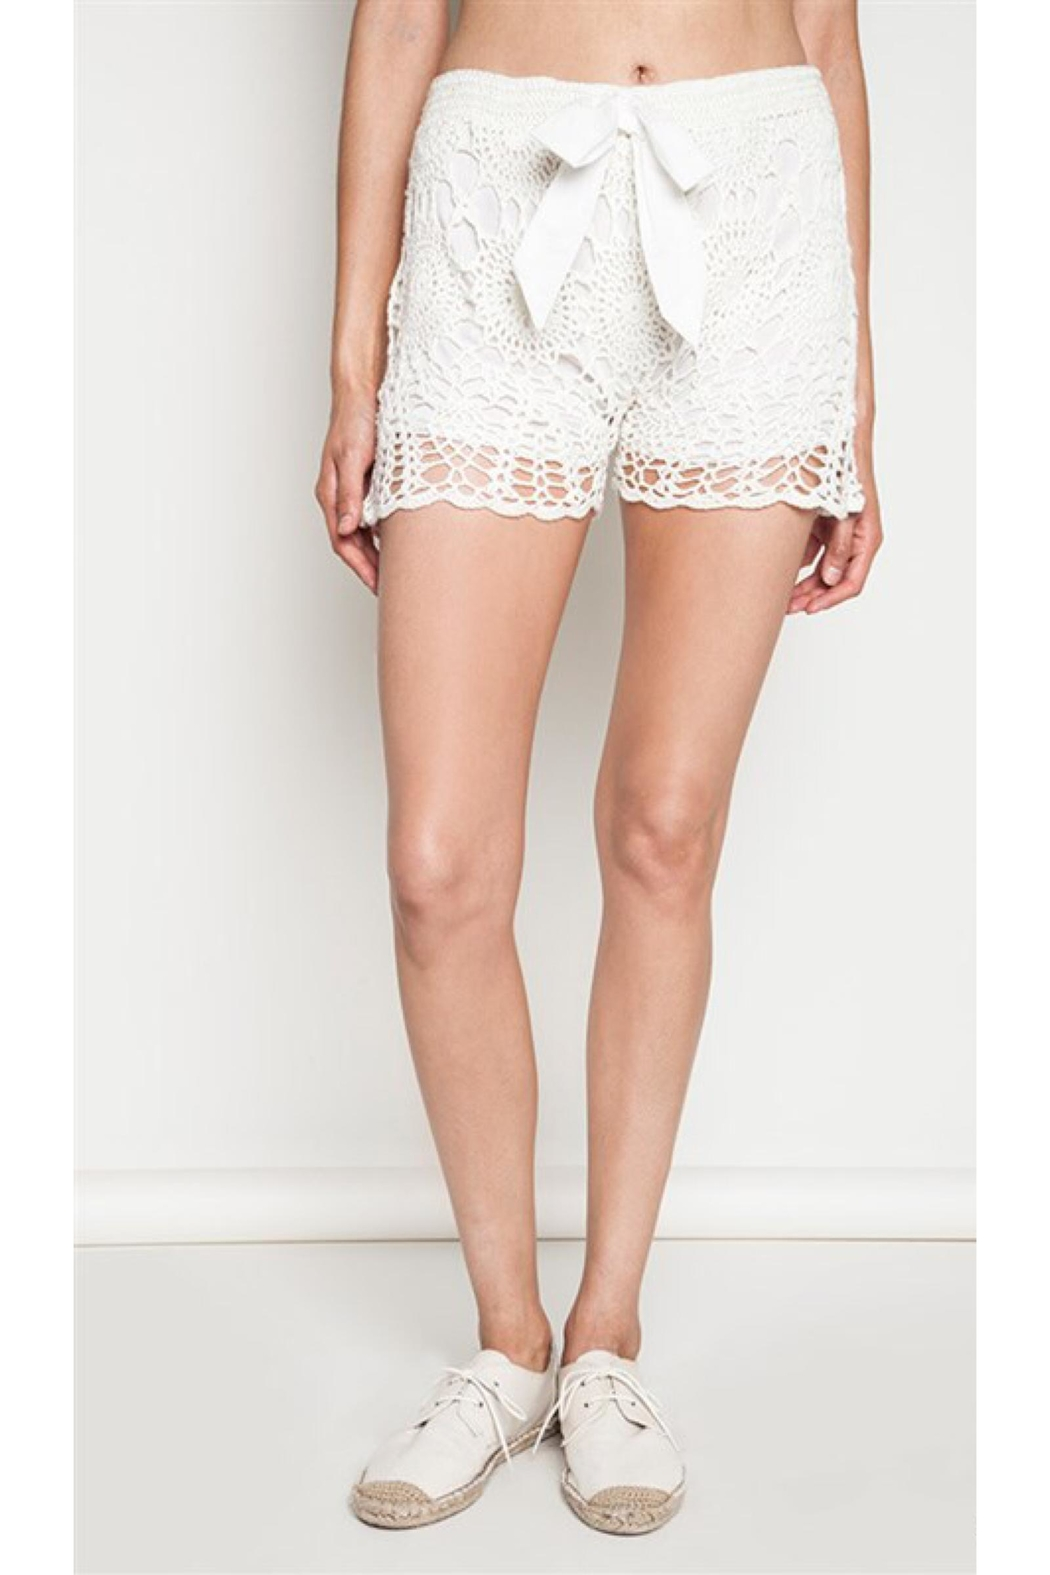 People Outfitter Ivory Crochet Shorts - Main Image